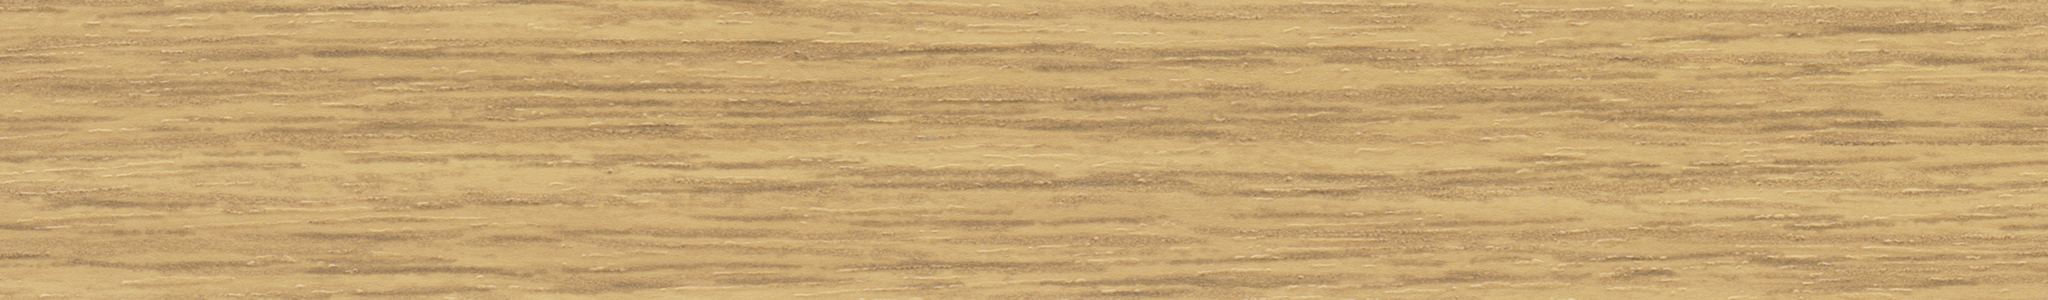 HD 243786 ABS Edge Oak Pore